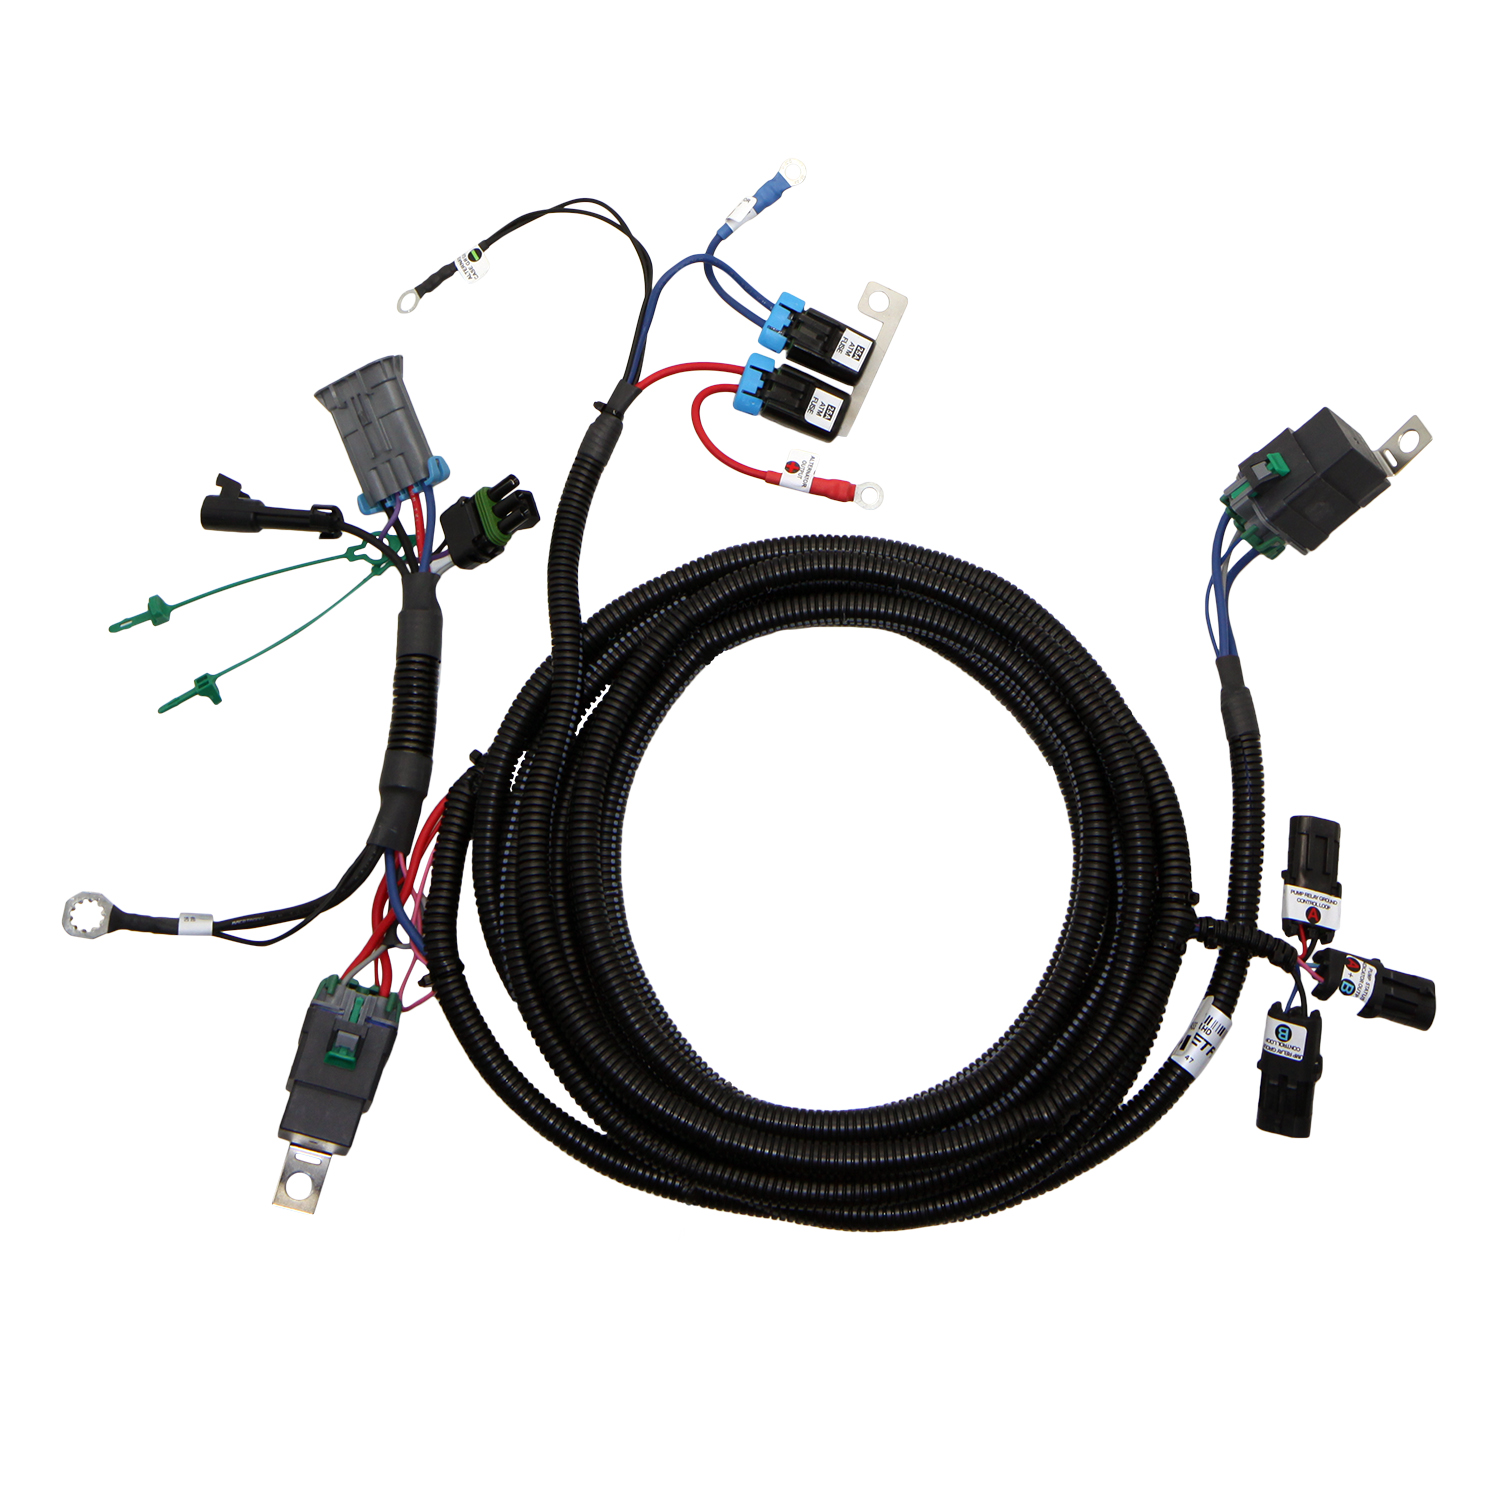 g7 dp fuel pump wiring harness (fpwh 021hd) dual pump power GM Fuel Pump Wiring Diagram g7 dp fuel pump wiring harness